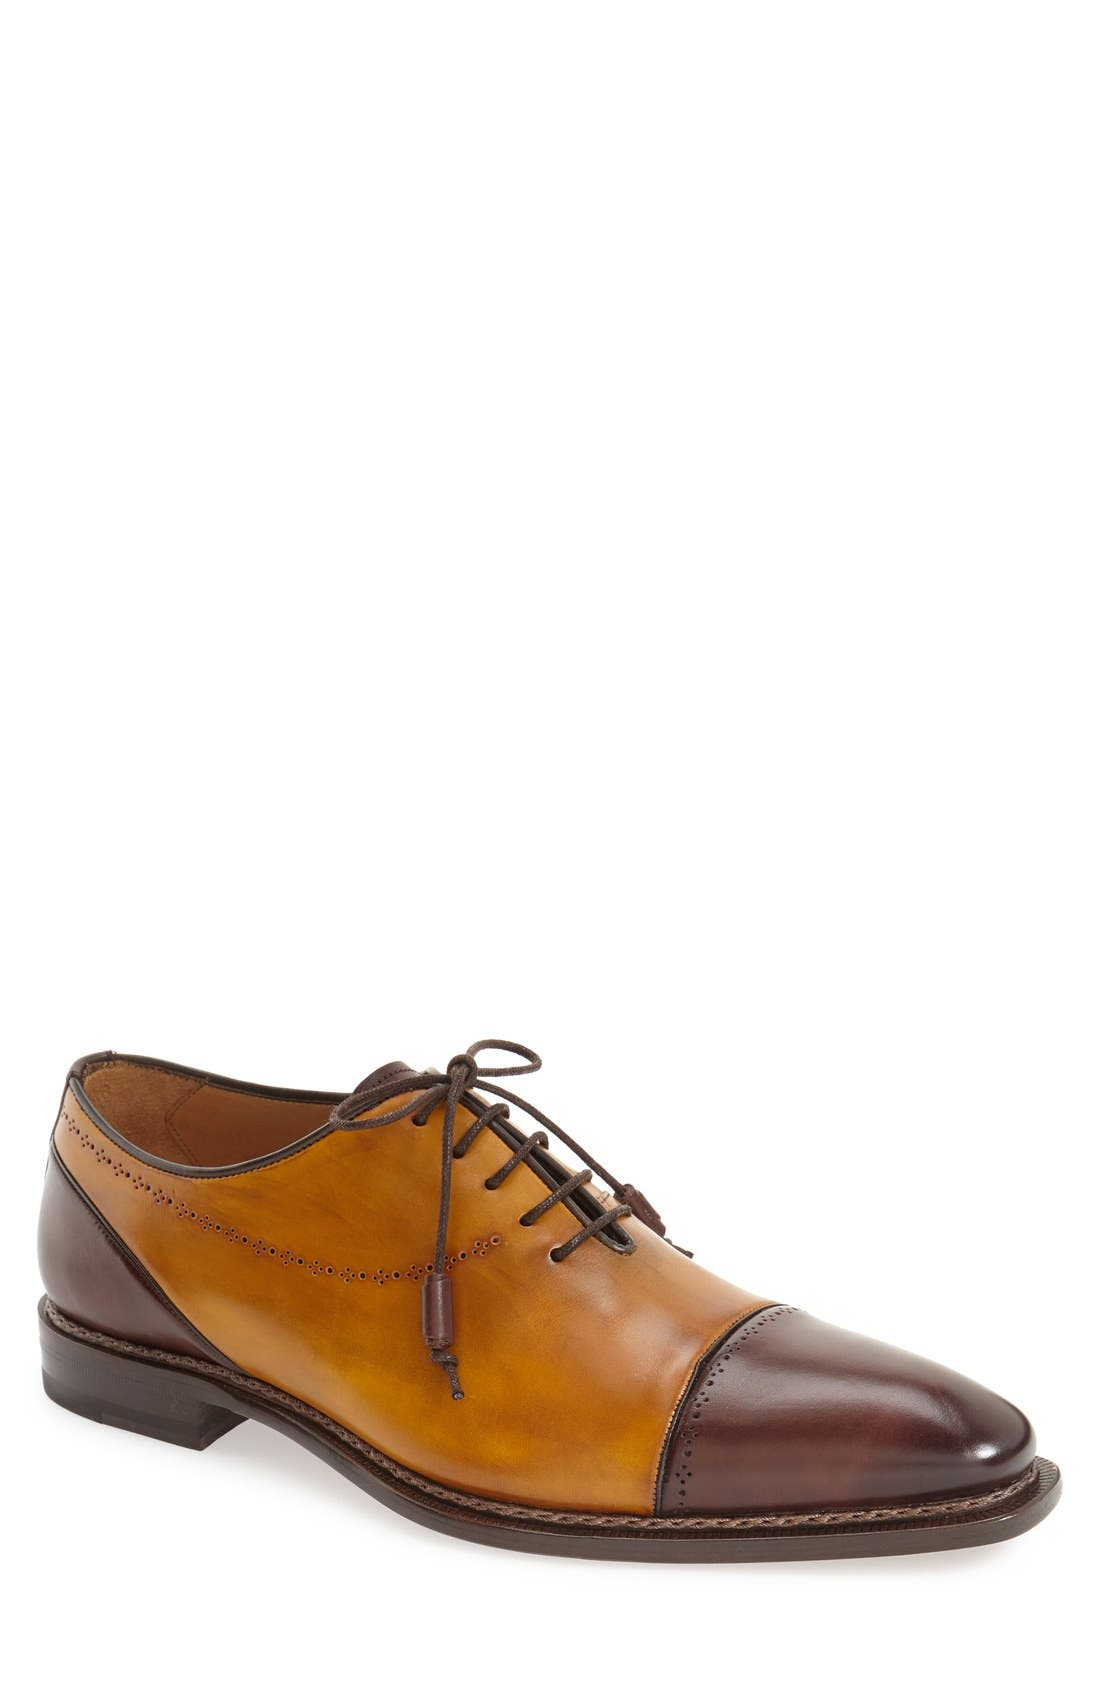 Mezlan 'Antico' Cap Toe Oxford (Men)